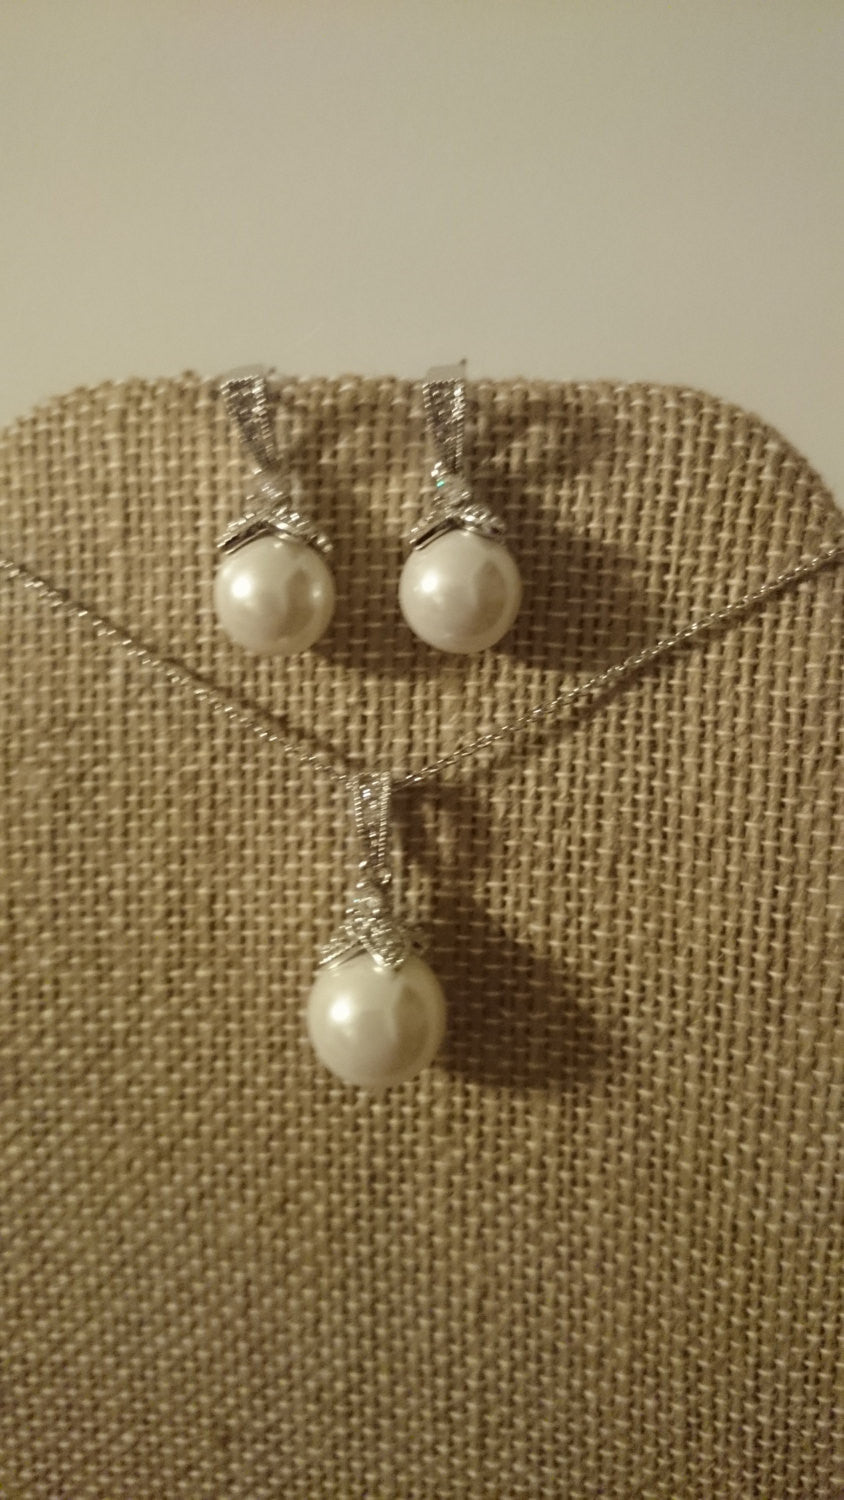 Pearl Drop Bridal Earrings and Necklace Jewelry Set, White Pearl Wedding Jewelry Set, Wedding Necklace, Bridesmaids Jewelry Set, Gift Set